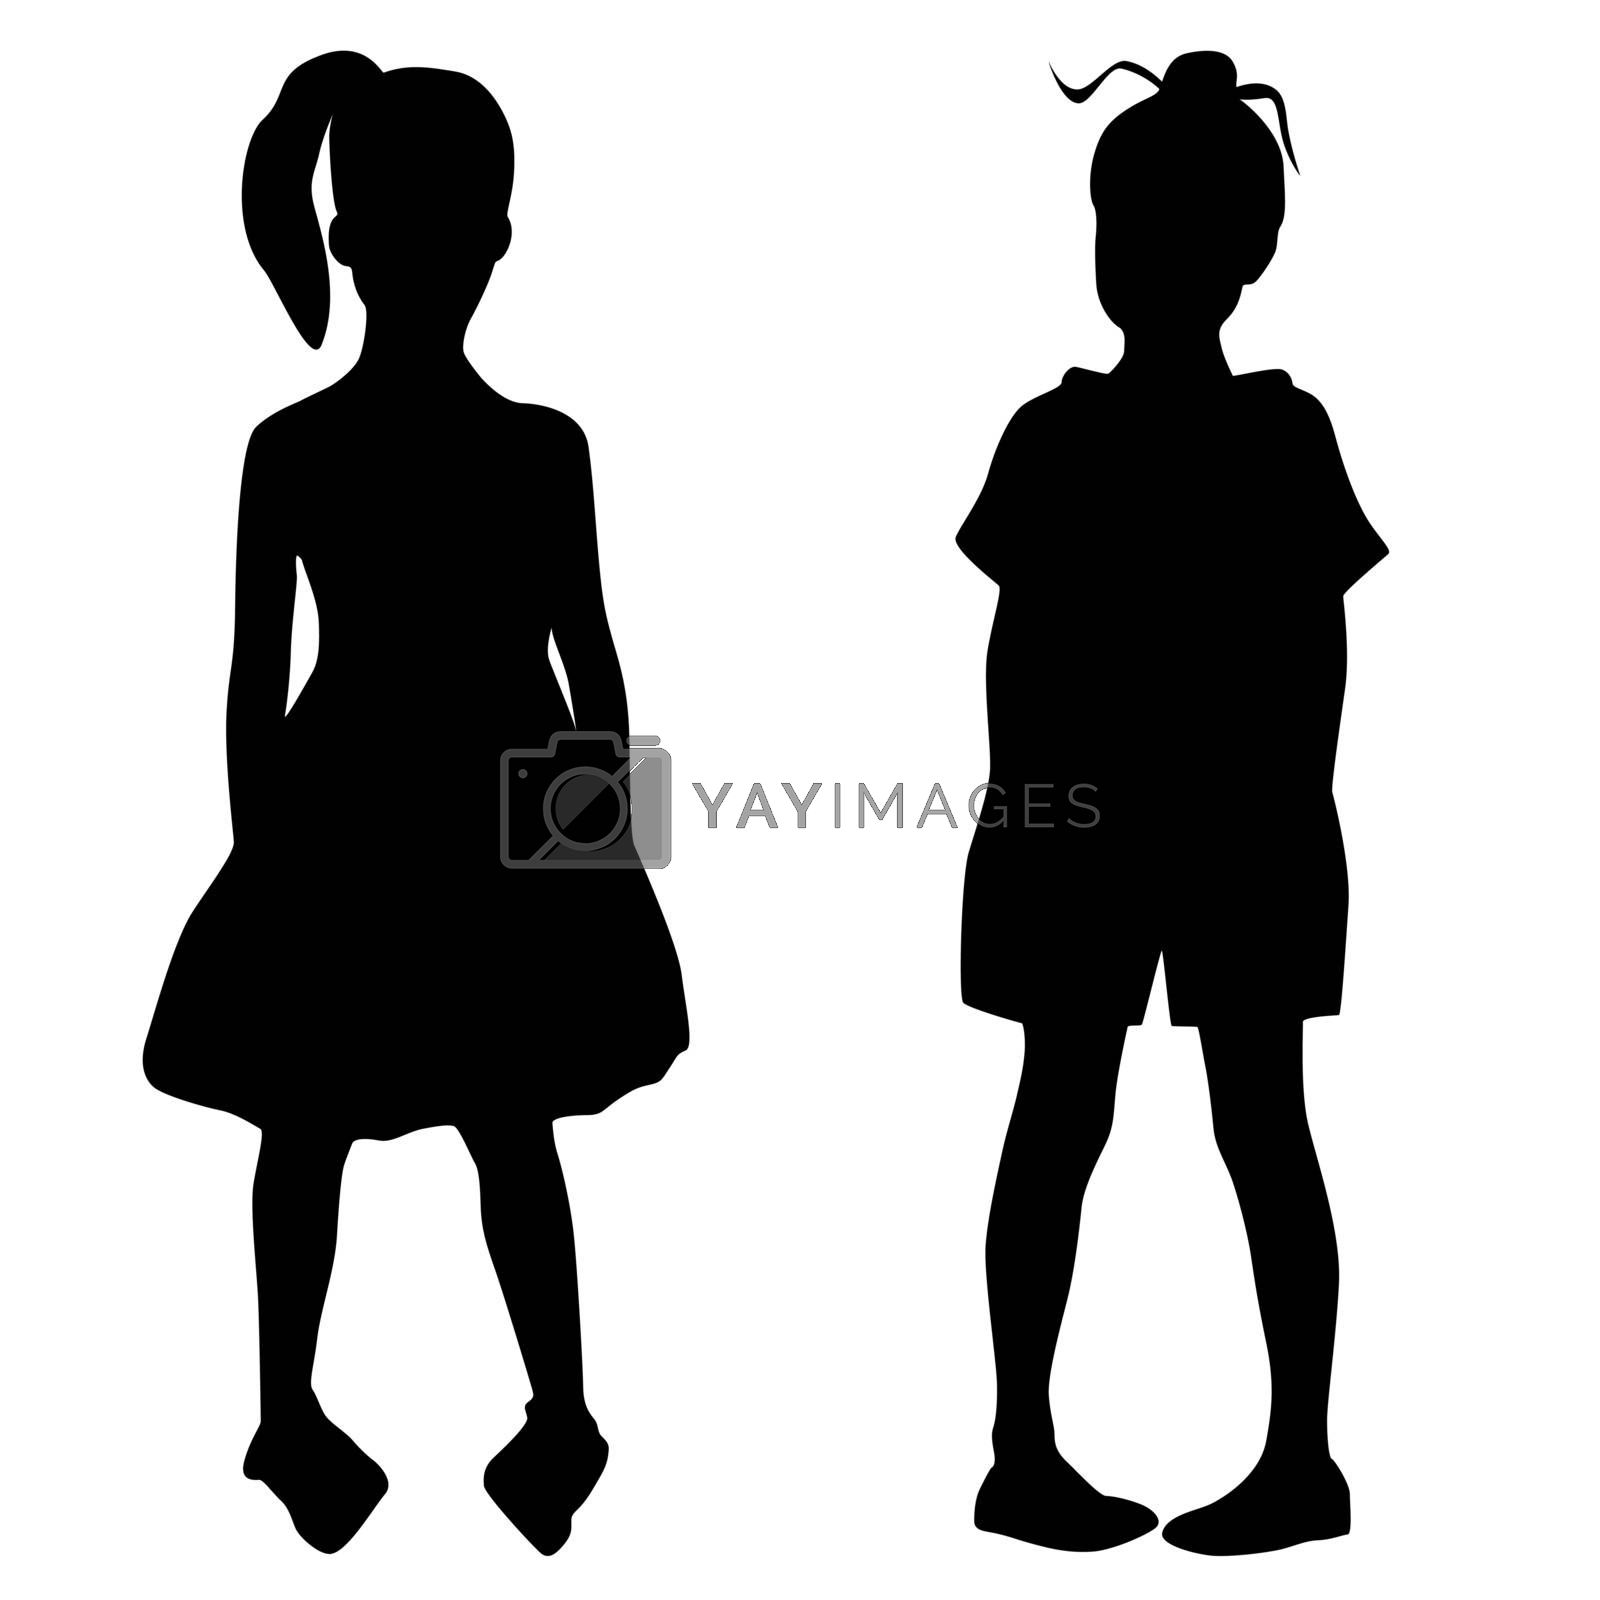 Silhouettes of two fashion girs